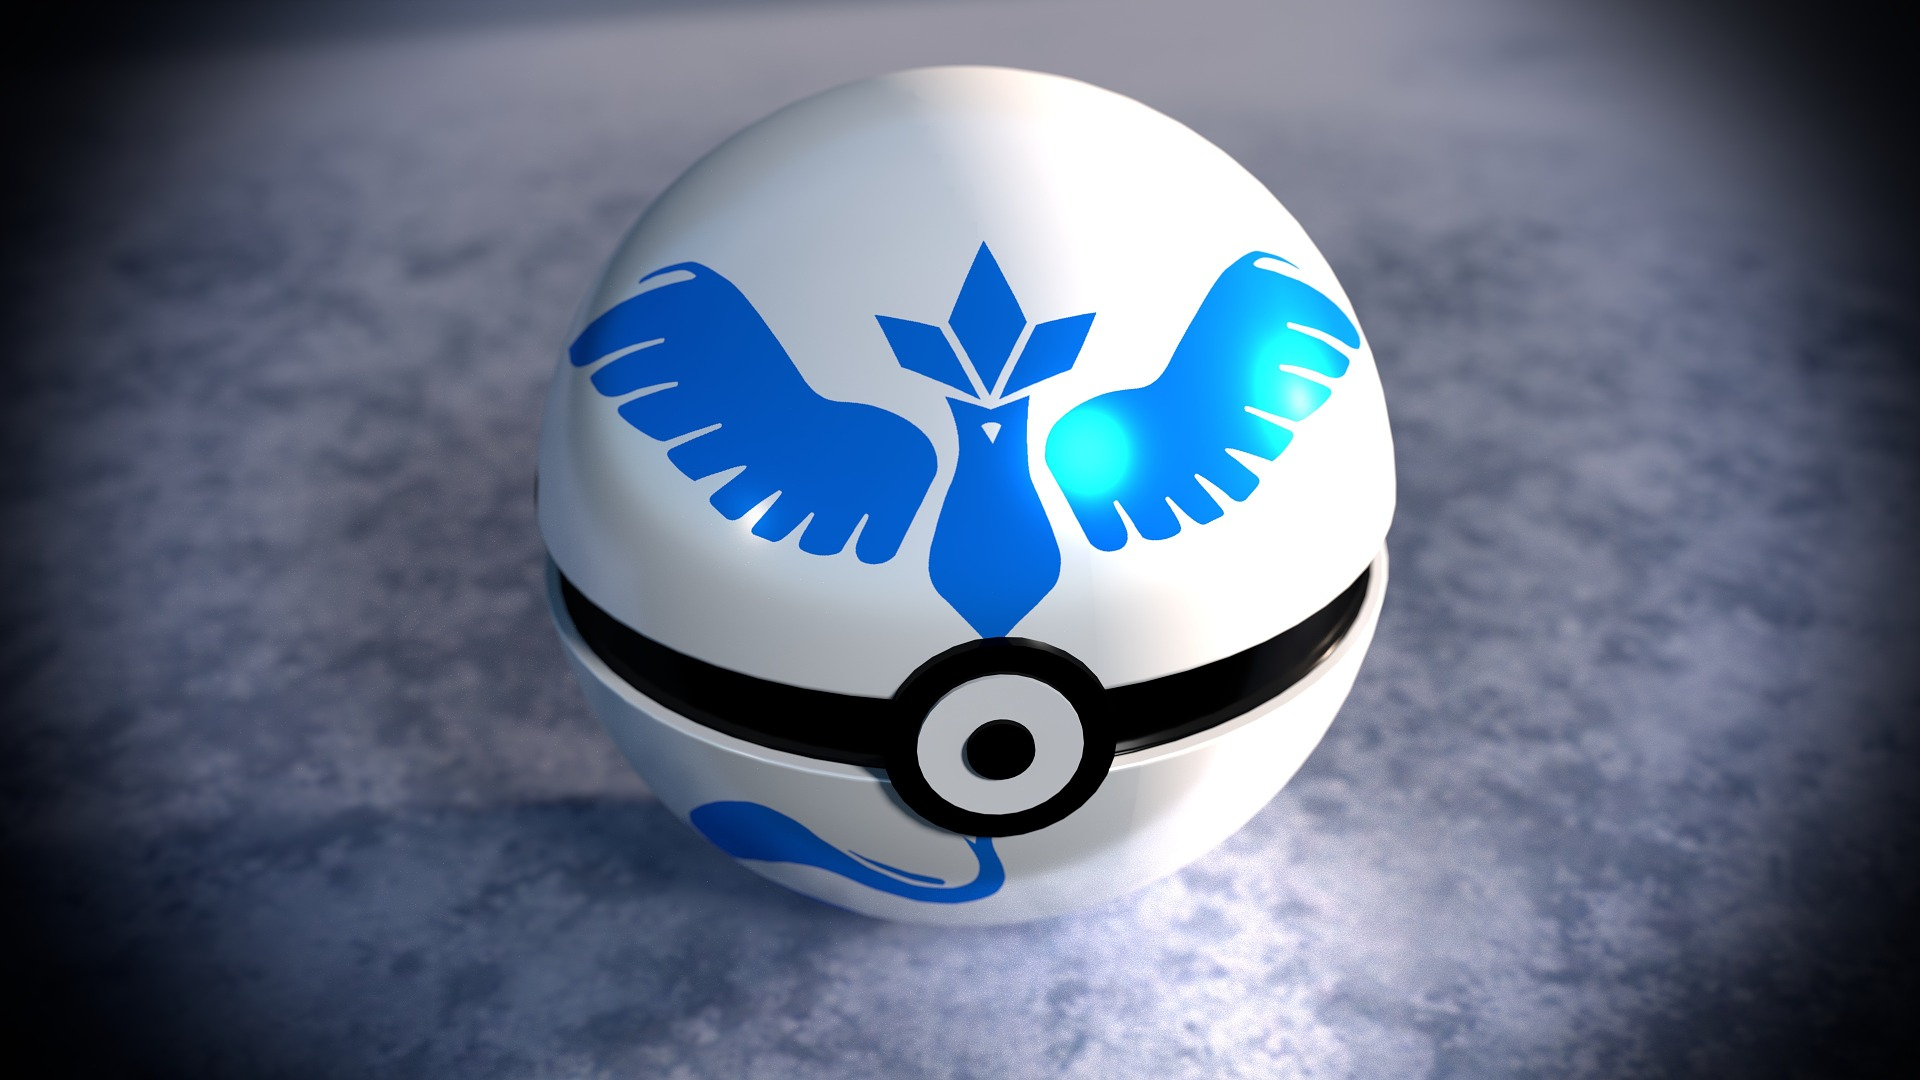 pokeball, pokemon, jeu, Pokemon aller, Manga - Fonds d'écran HD - Professor-falken.com